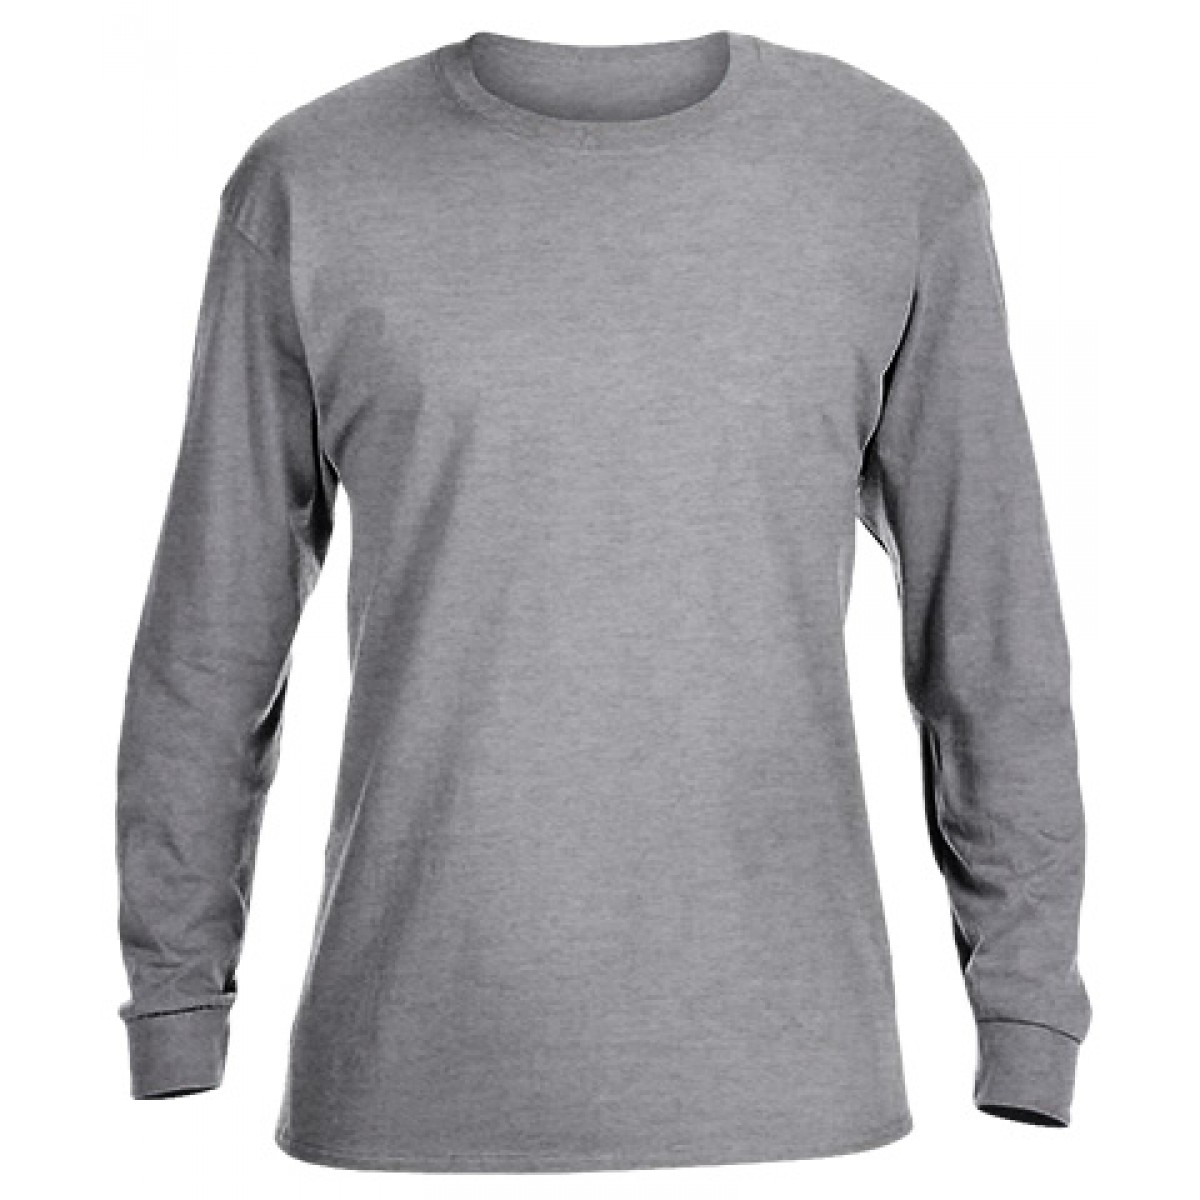 Heavy Cotton Long-Sleeve Adidas Shirt-Sports Grey-2XL